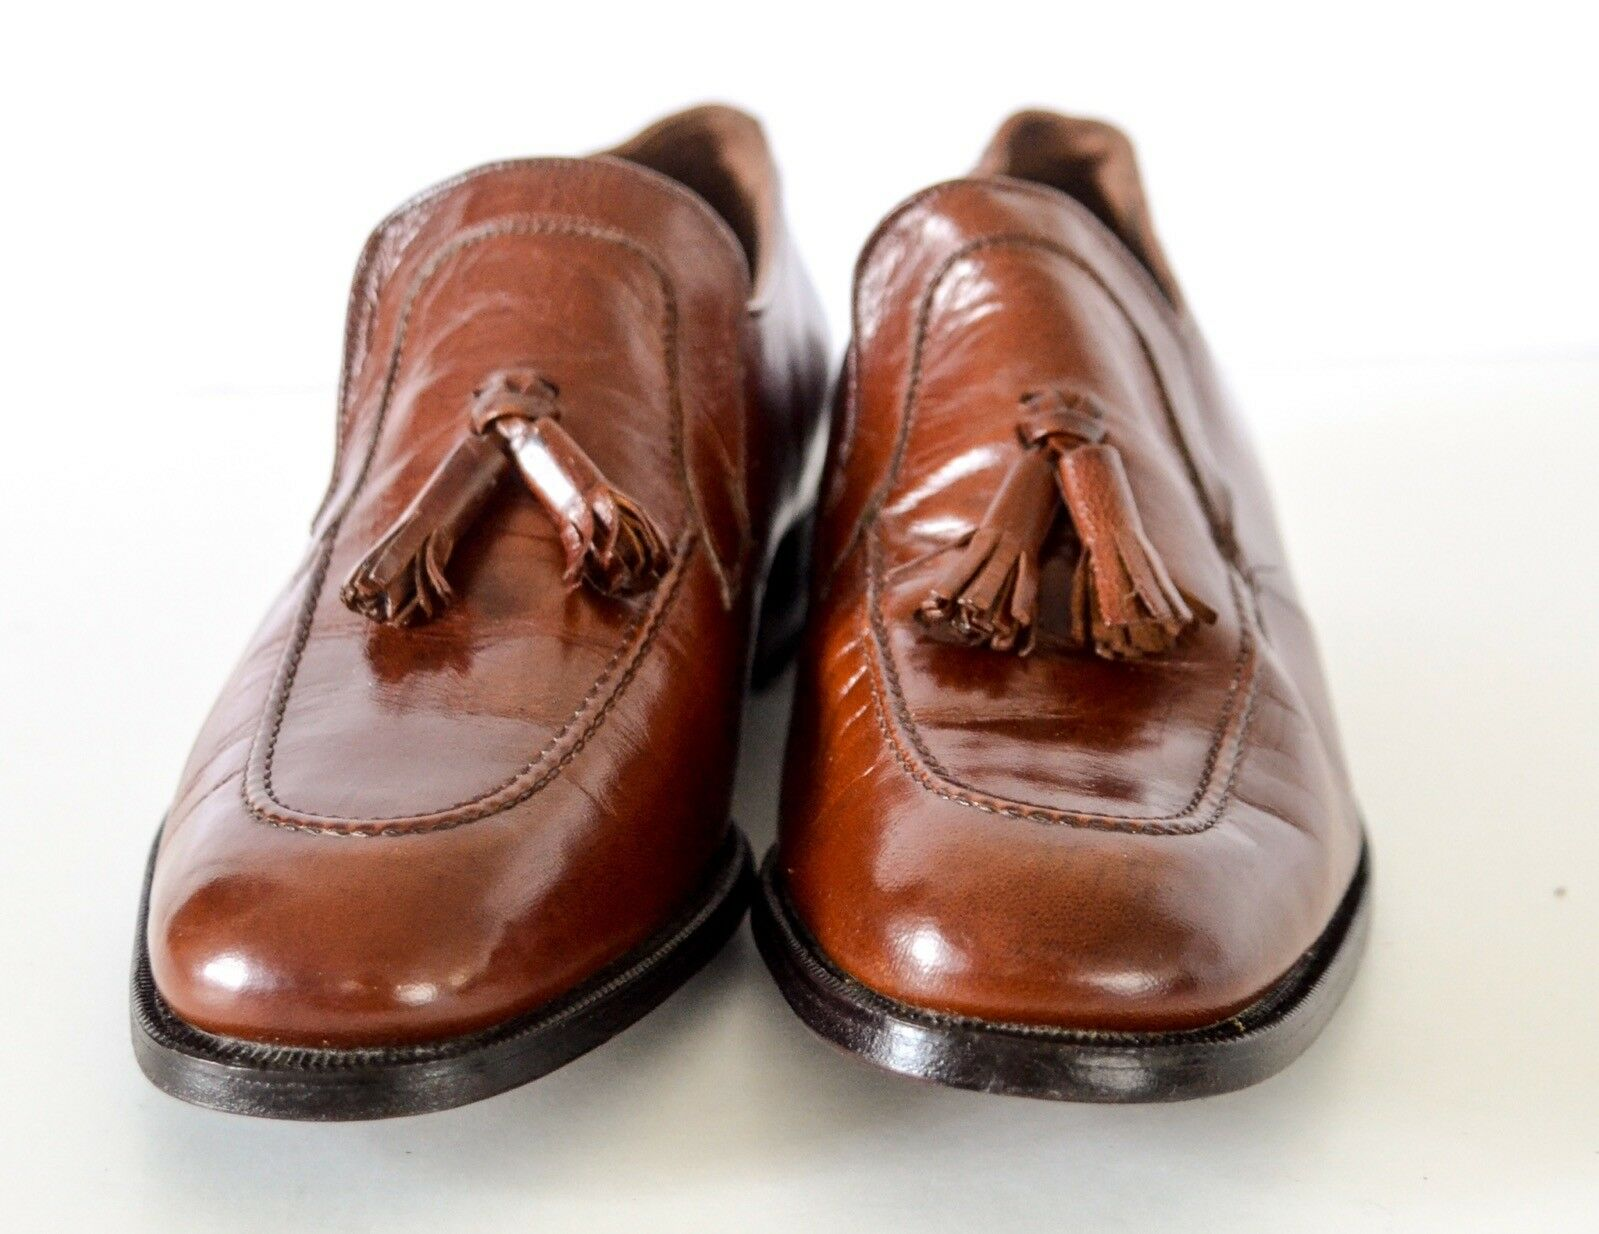 Vintage brown FLORSHEIM IMPERIAL Shoes Leather Tassel Loafers Shoes IMPERIAL Size 8D NOS 0bde48